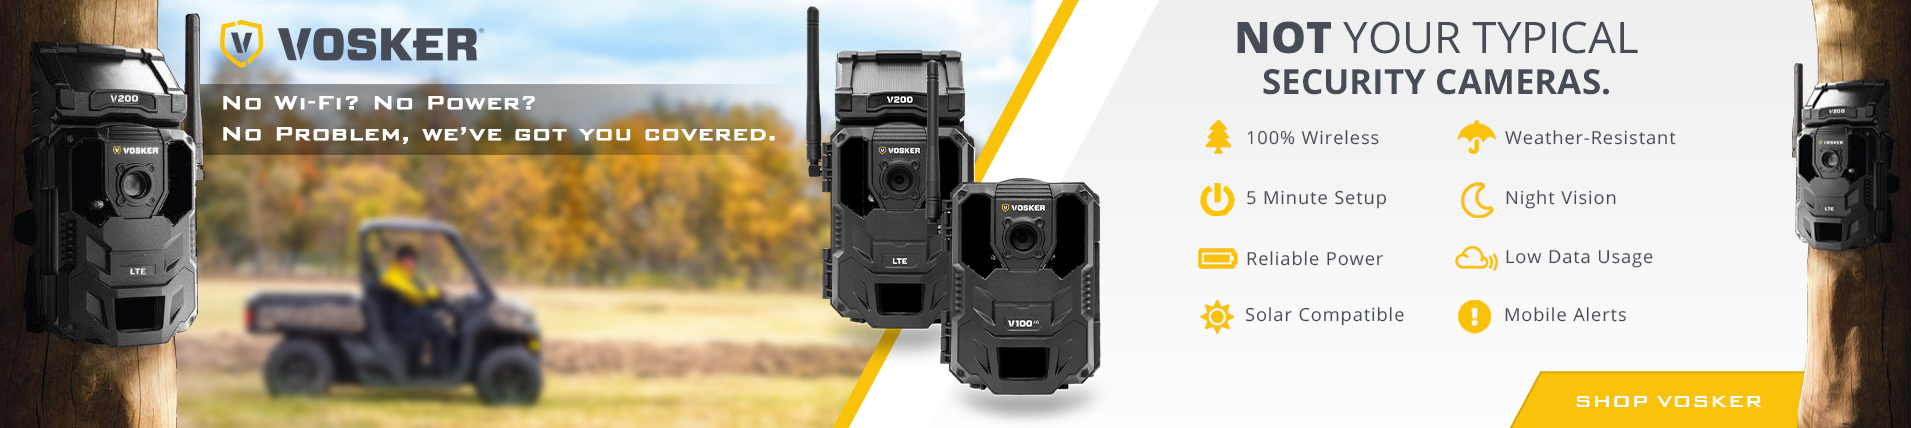 Vosker Wireless Cameras